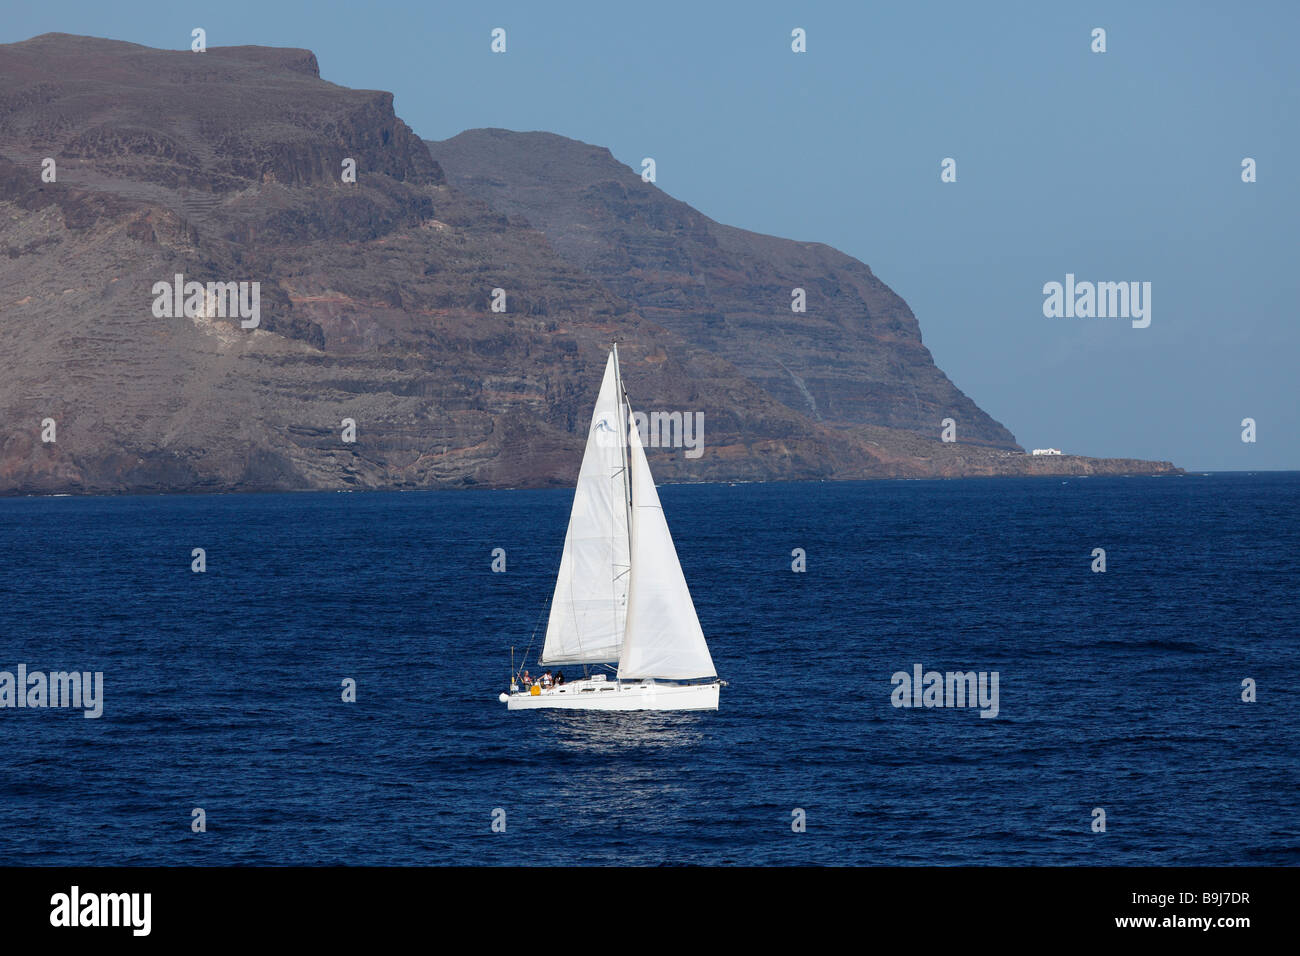 Sailing boat in front of La Gomera, Canary Islands, Spain, Europe - Stock Image